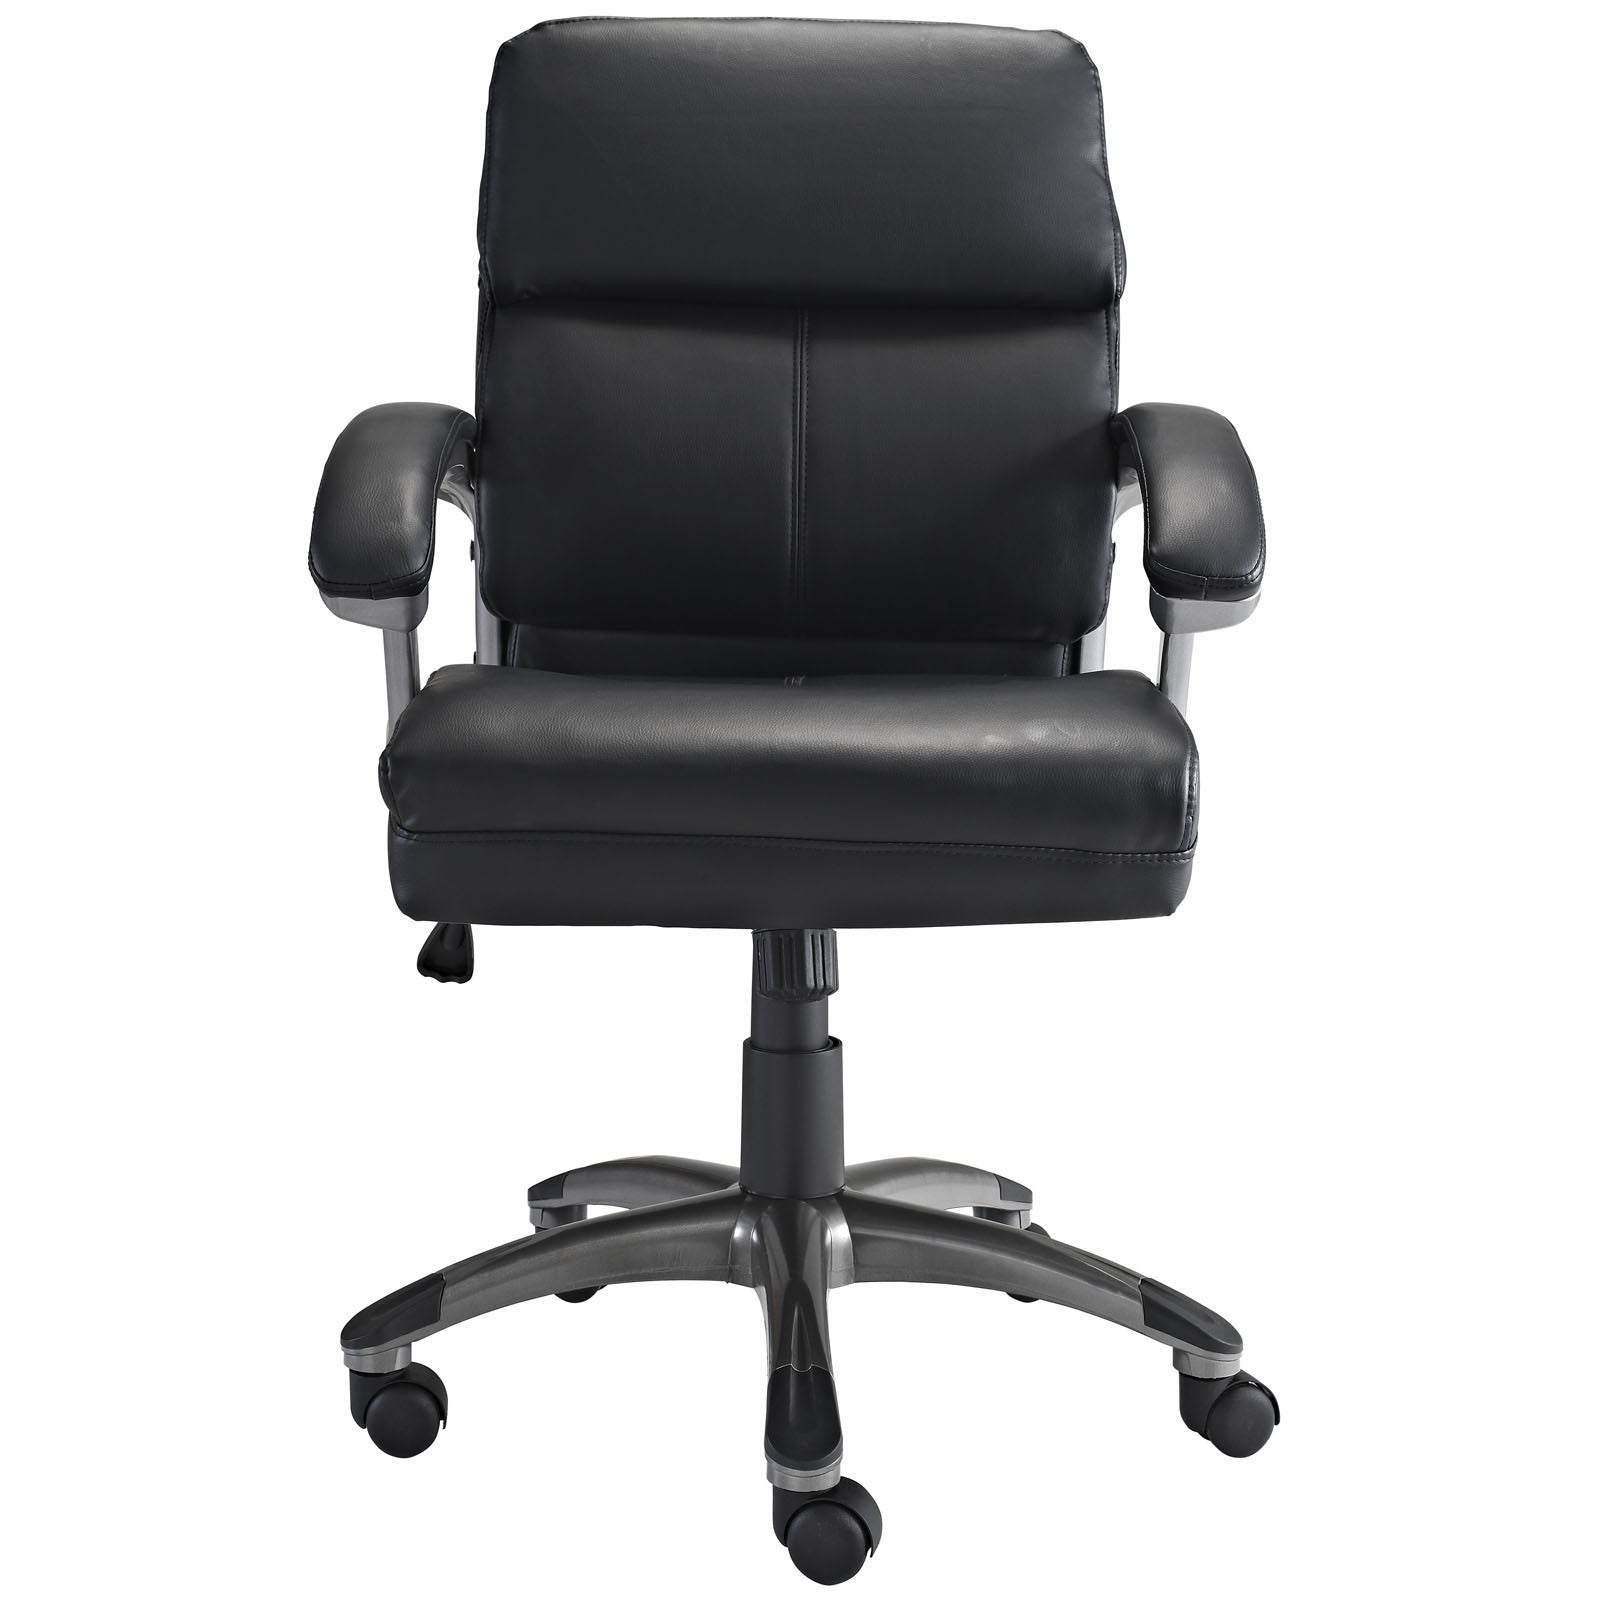 Stellar Mid Back Office Chair in Black - The Modern Source on brown office chair, ergonomic office chair, walmart reclining office chair, director office chair, low office chair, mid century office chair, white office chair, sciatica office chair, executive office chair, coccyx office chair, faux leather office chair, eames office chair, managers office chair, swivel office chair, mesh back office chair, pink office chair, kneeling office chair, task office chair, high-back office chair, red office chair,